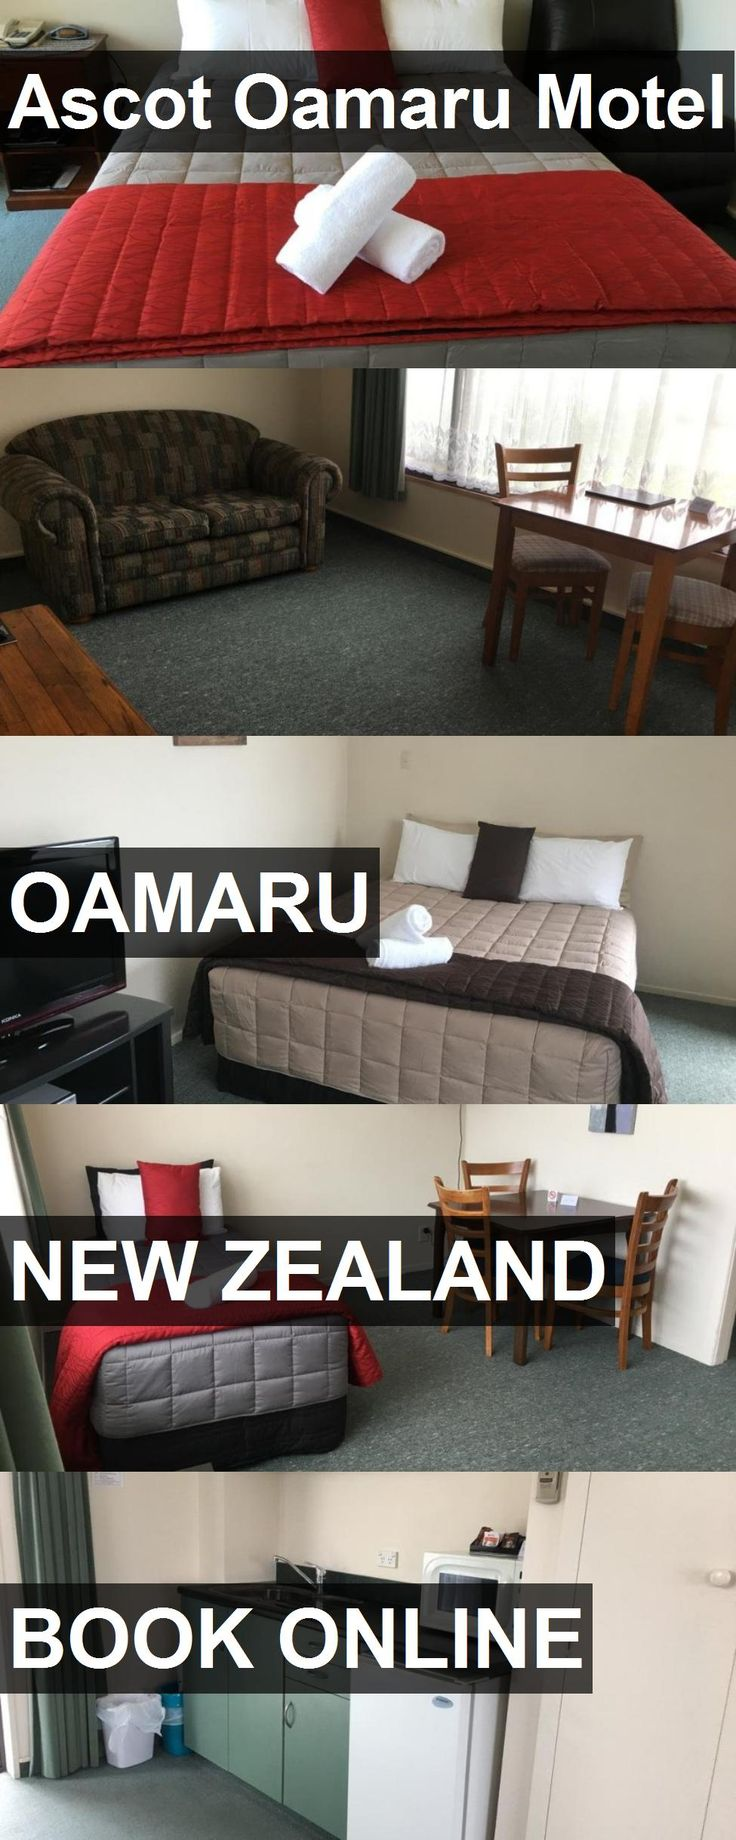 Hotel Ascot Oamaru Motel in Oamaru, New Zealand. For more information, photos, reviews and best prices please follow the link. #NewZealand #Oamaru #AscotOamaruMotel #hotel #travel #vacation